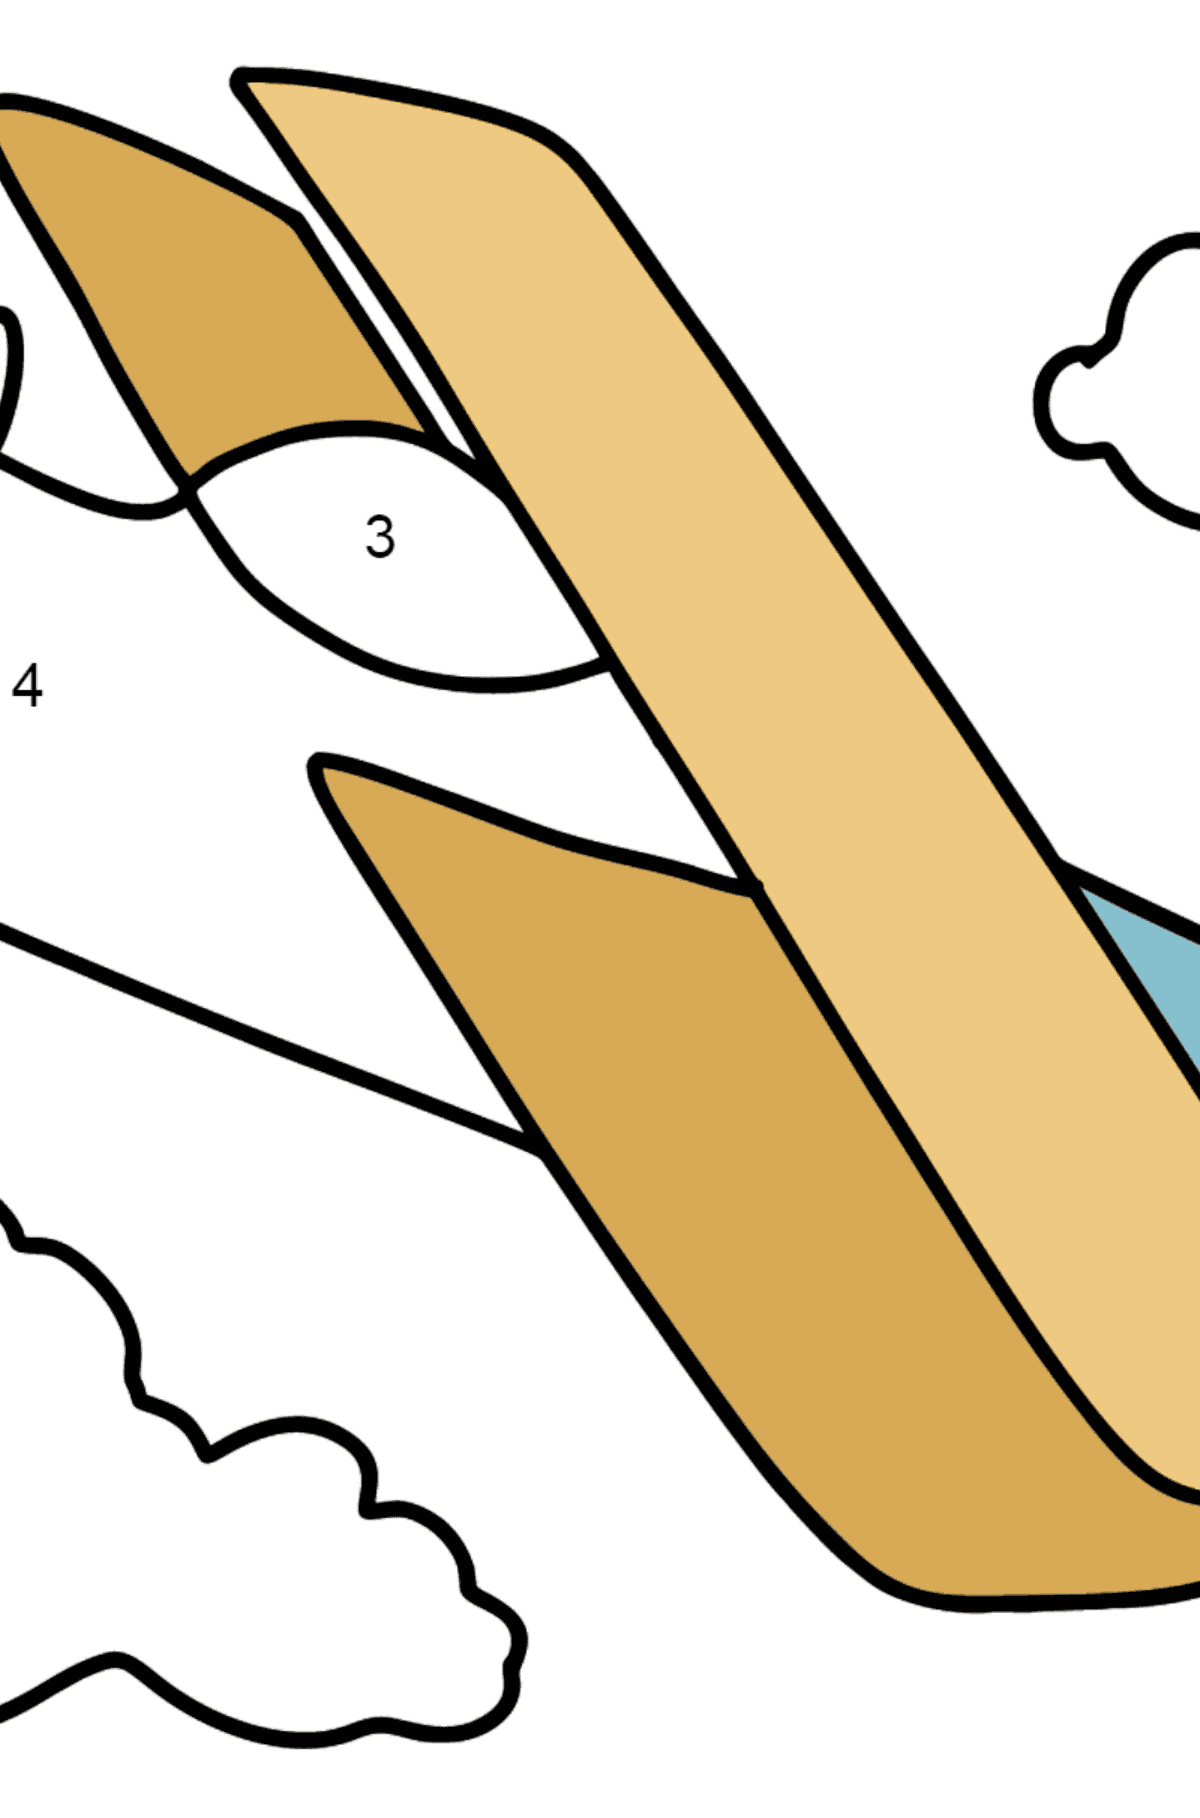 Simple Airplane coloring page - Coloring by Numbers for Kids